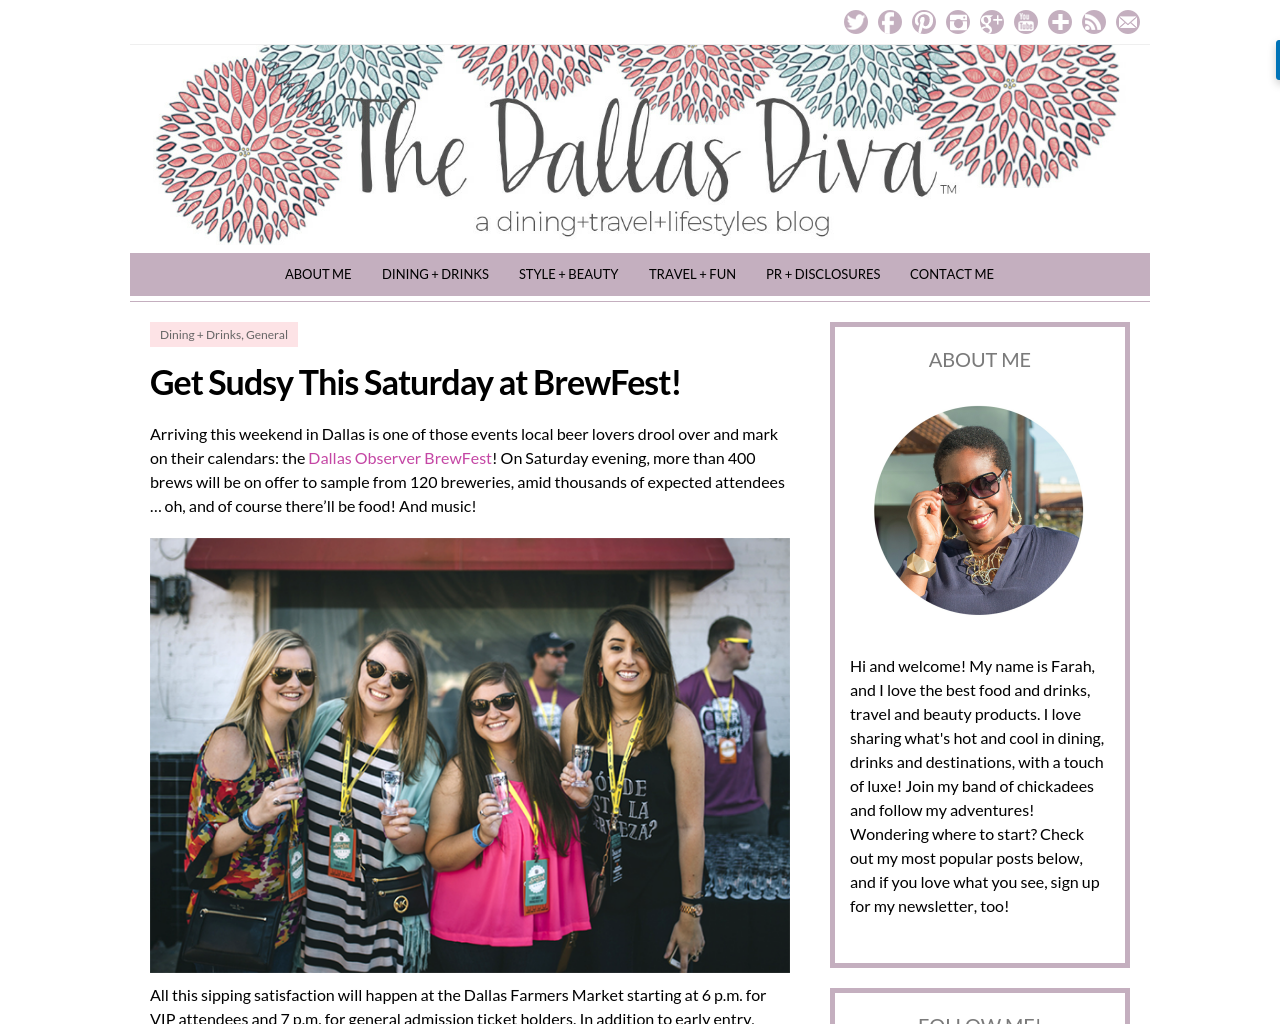 The-Dallas-Diva-Advertising-Reviews-Pricing